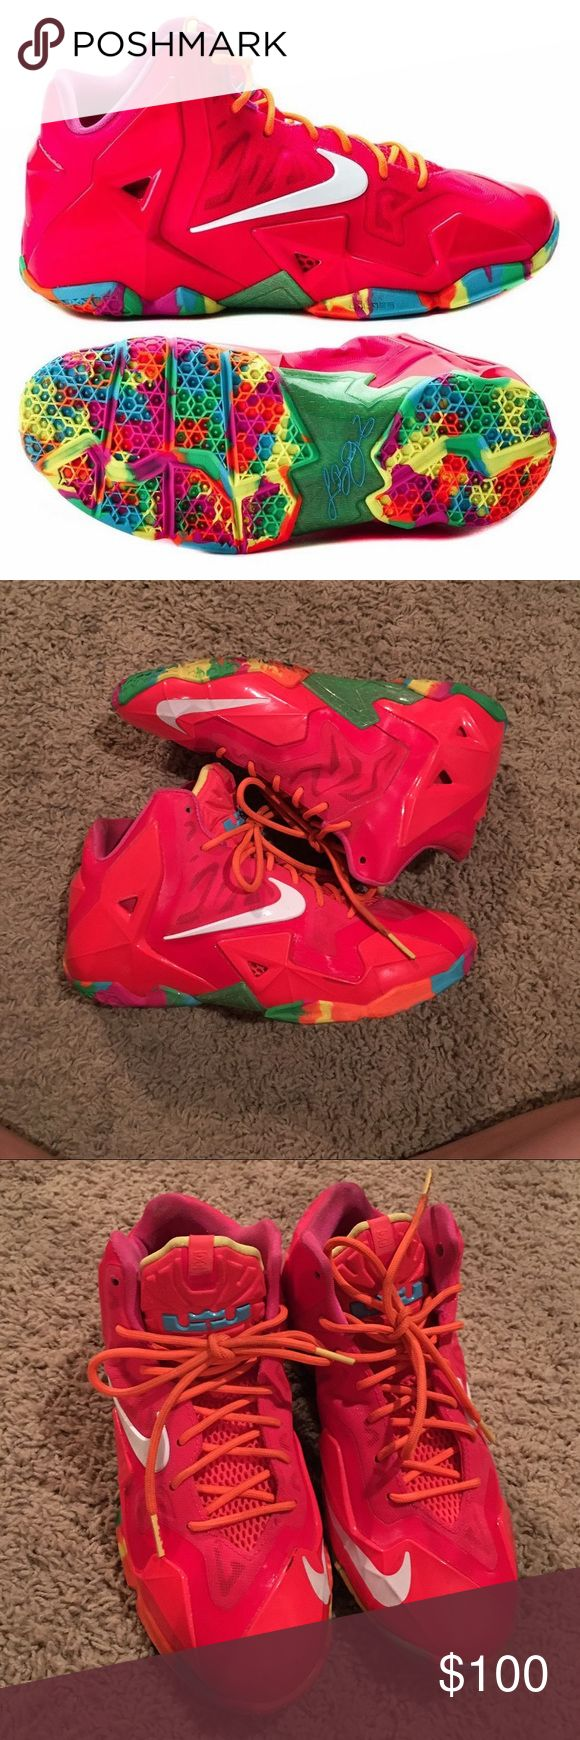 "Rare Lebron ""Fruity Pebble"" edition Nikes. Very rare Nike Lebron Fruity Pebbles great for collectors. Size in youth. They will fit best on a woman with size 7 or 7.5 shoe size. Nike Shoes Sneakers"